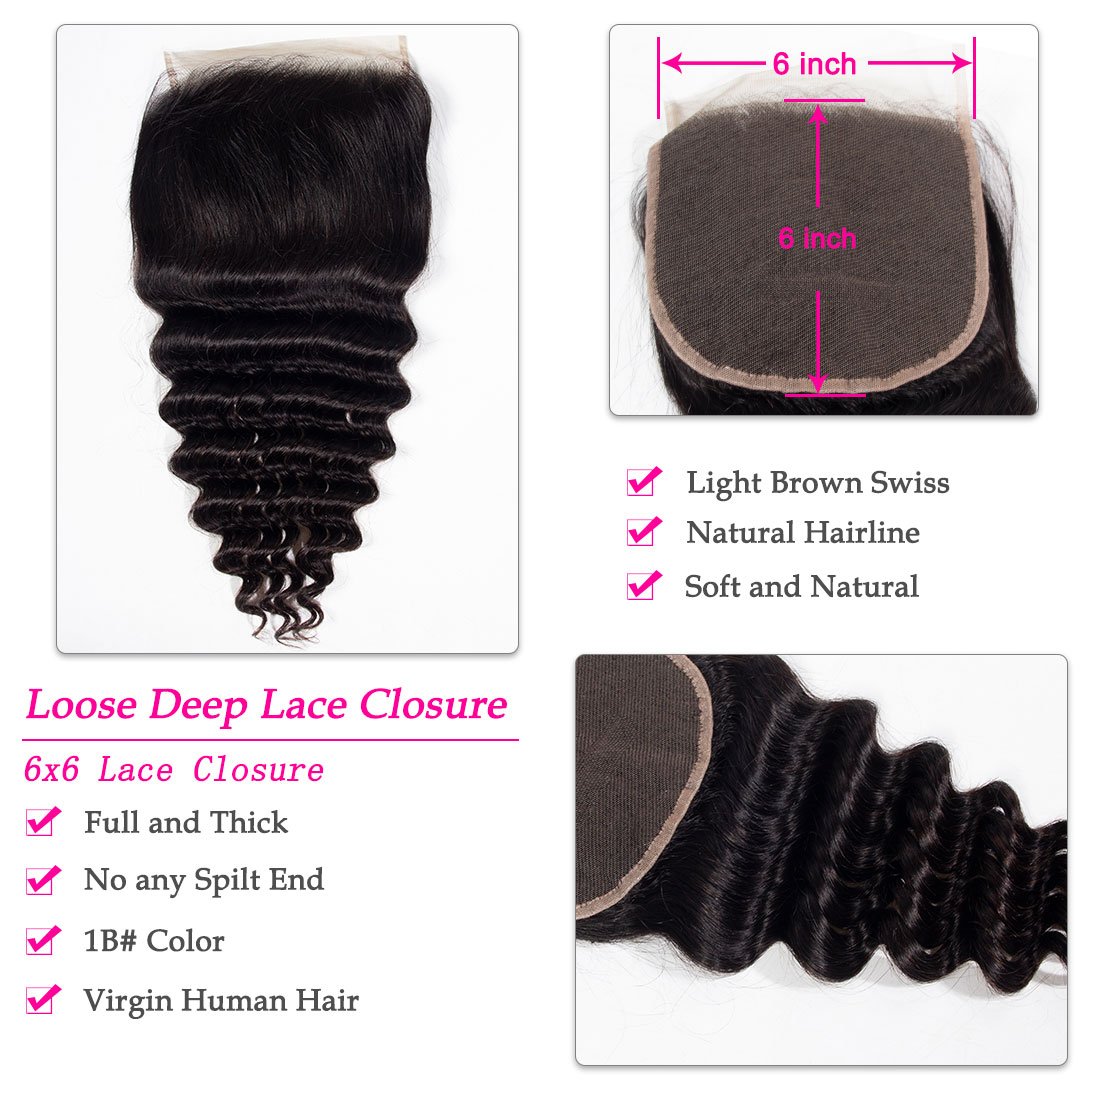 loose deep 6x6 lace closure